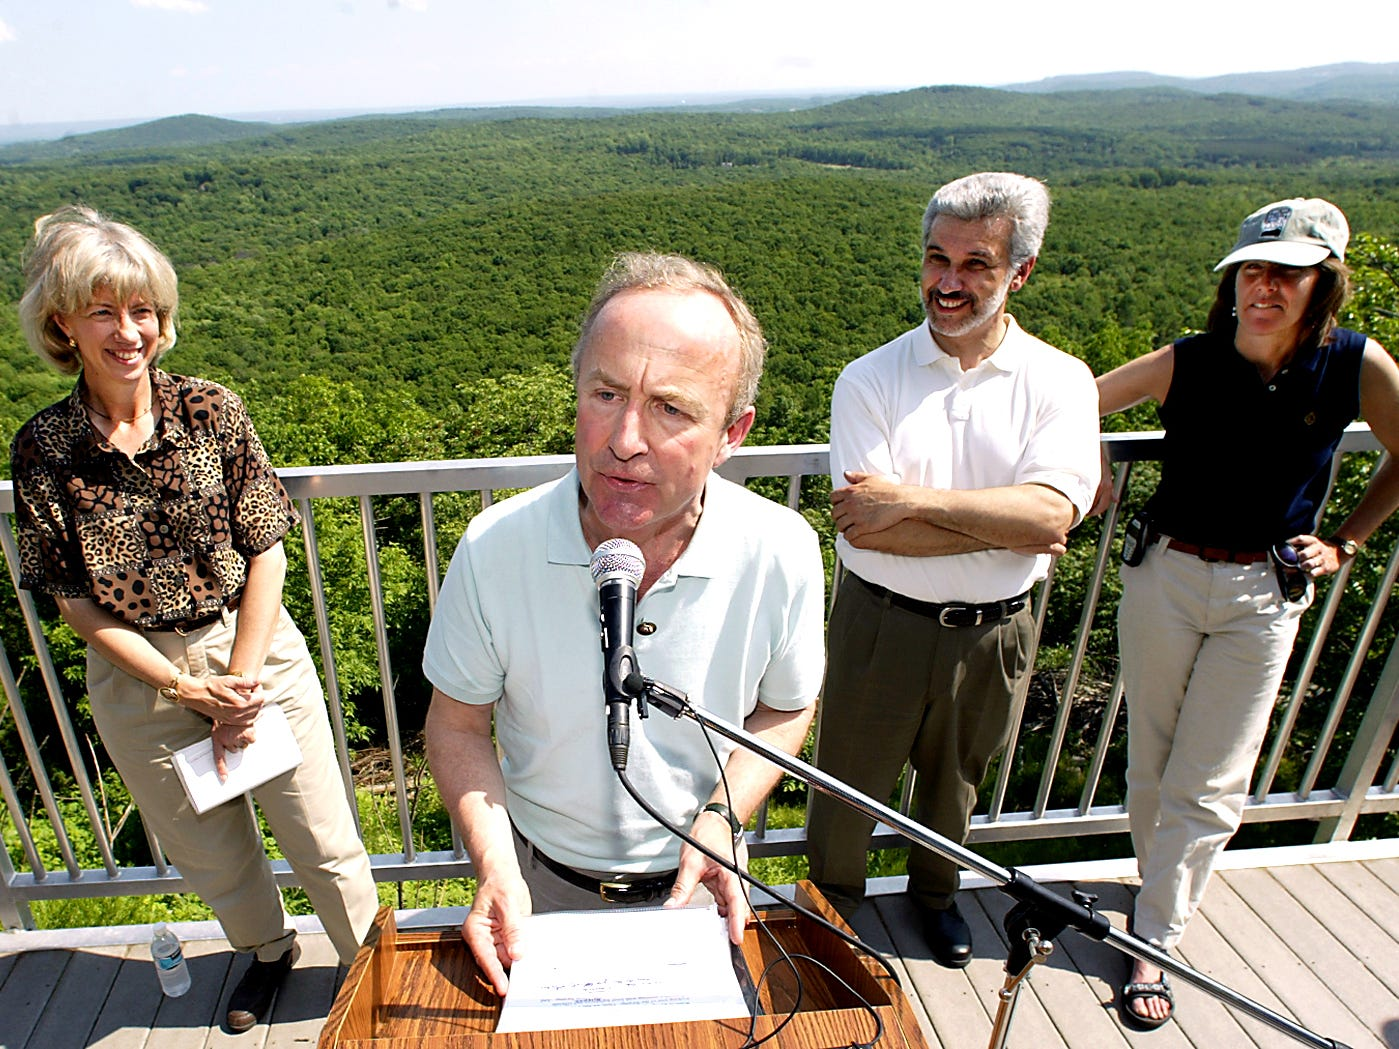 Rockaway Twp--May 22, 2004--US Secretary of the Interior Gale Norton, l, Congressman Rodney Frelinghuysen, Mayor of Rockaway Twp Lou Sceusi and Midlantic region VP field rep for the Trust for Public Land Rose Harvey during a Highlands news conference at Wildcat Ridge.